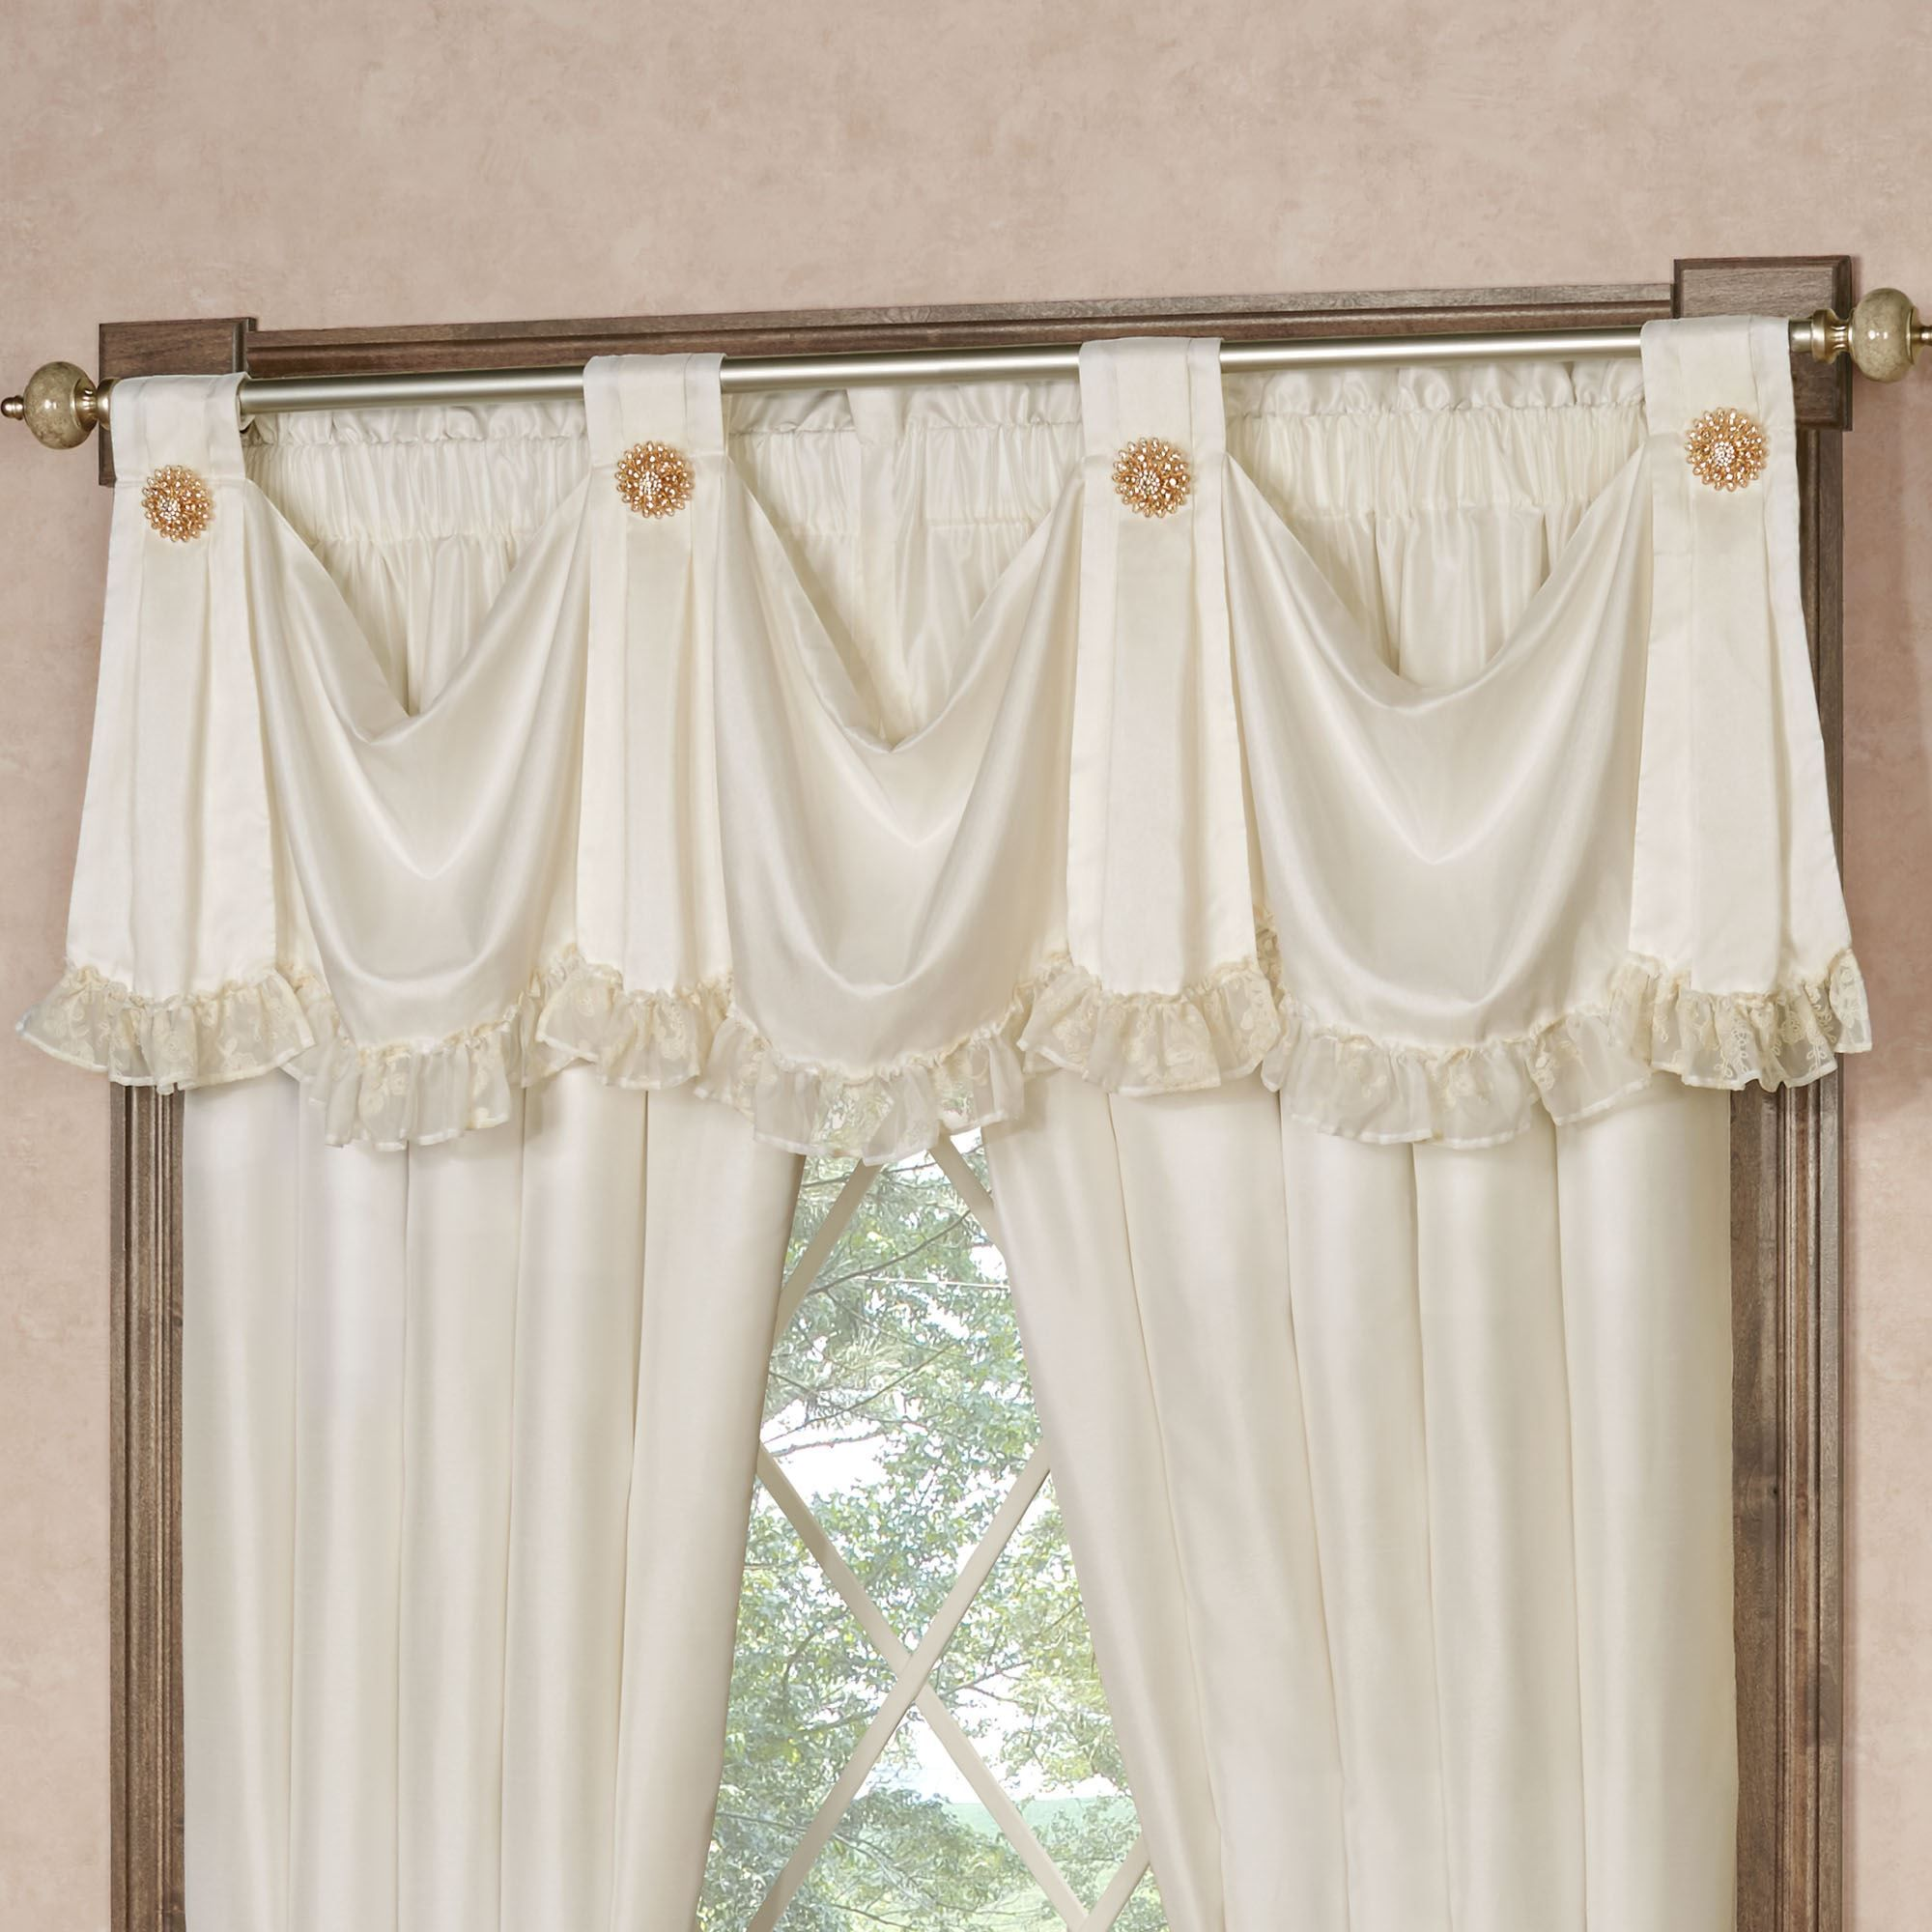 Cameo Lace Romantic Vintage Style Grande Bedspread Bedding Lace Window Treatments Bed Spreads Valance